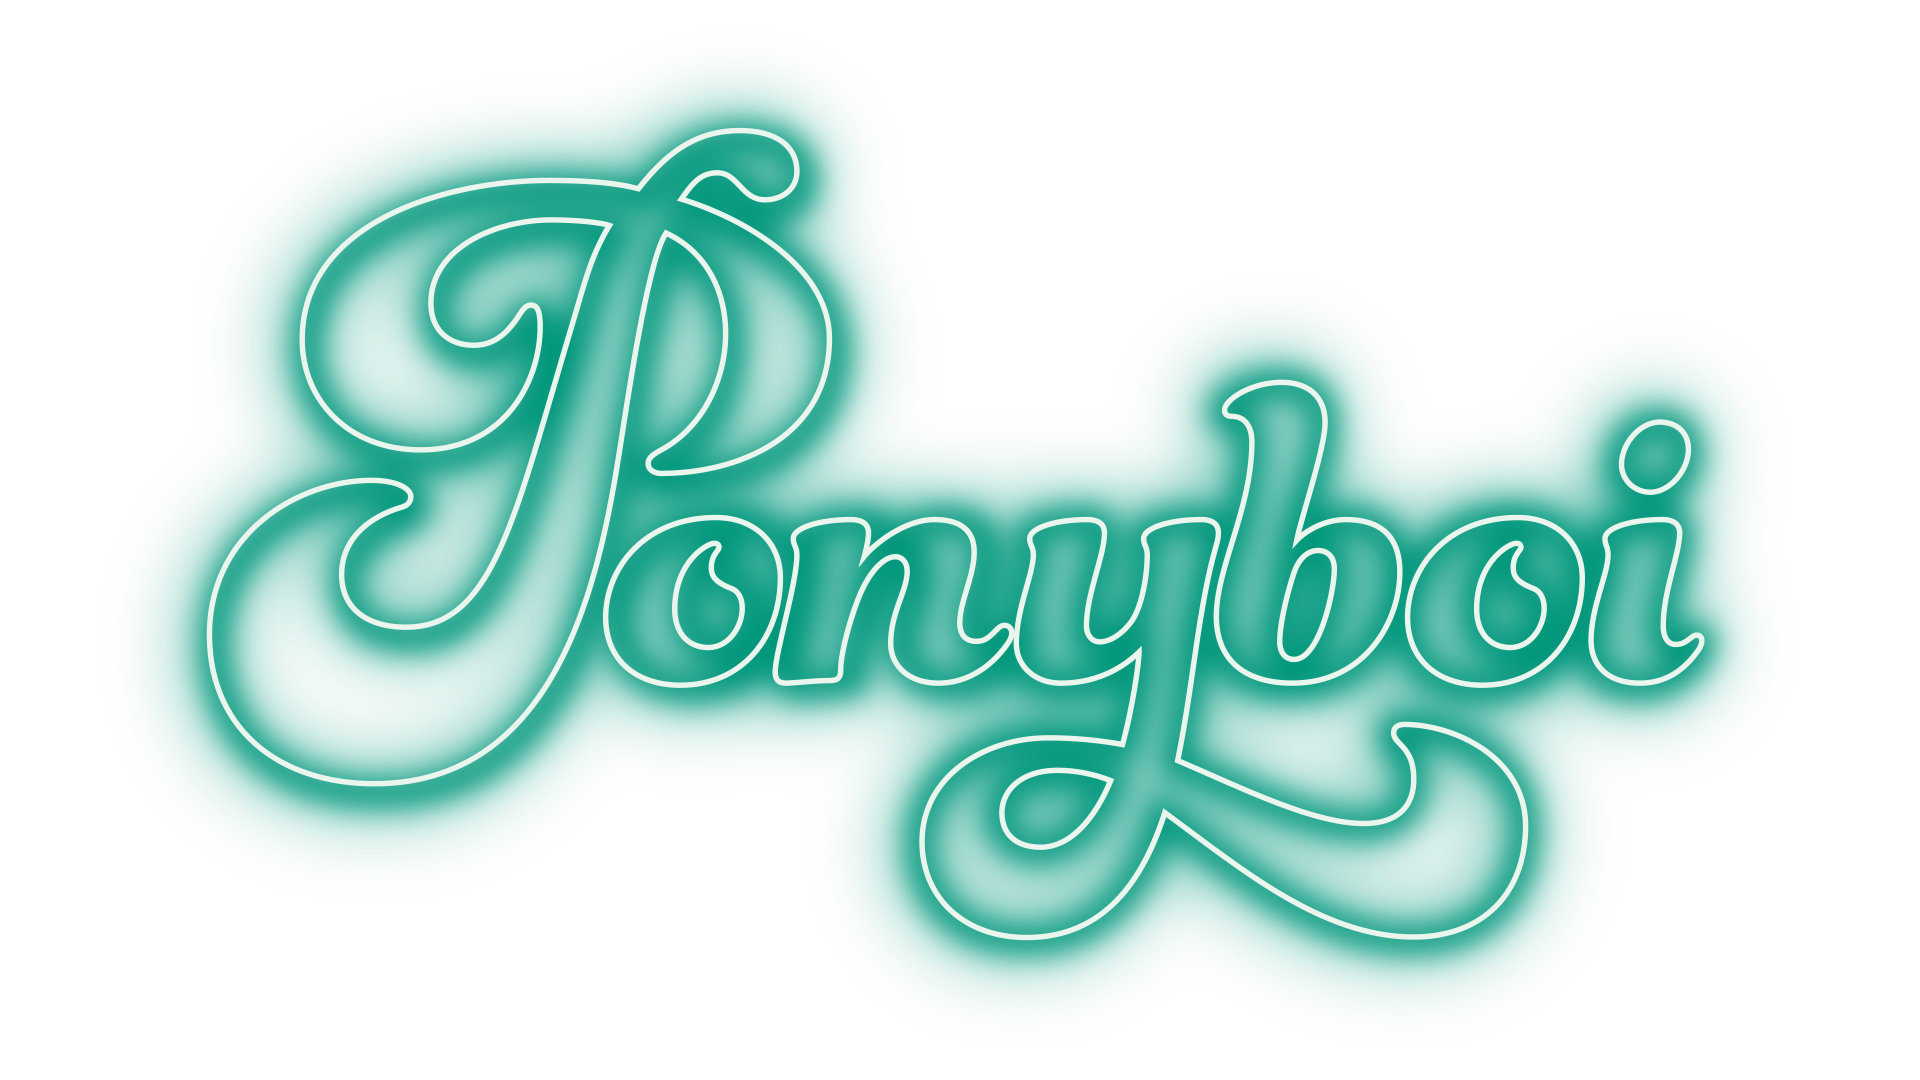 Ponyboi  is a USC Graduate thesis film written and directed by River Gallo.It follows a young intersex runaway in New Jersey, looking for love in all the wrong places.